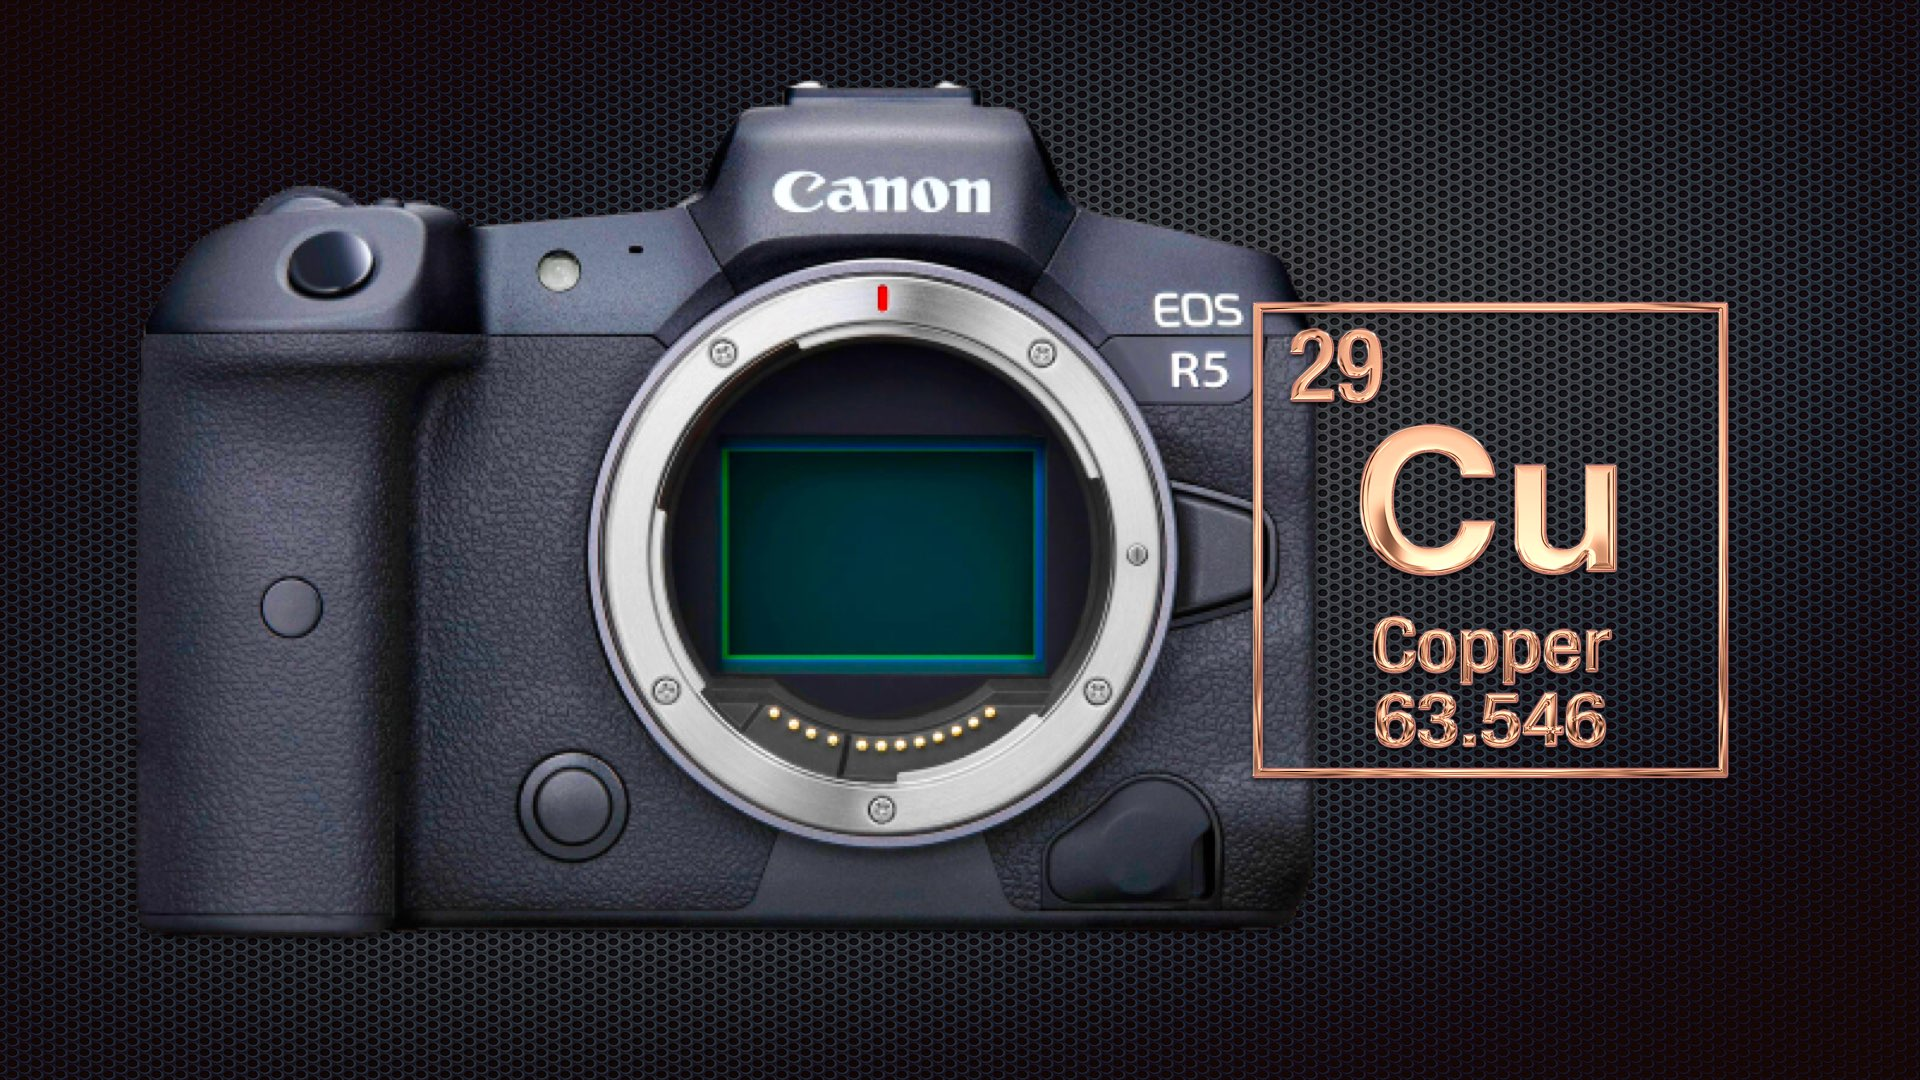 Canon EOS R5's Overheating Issues Solved by Installing Copper Plate